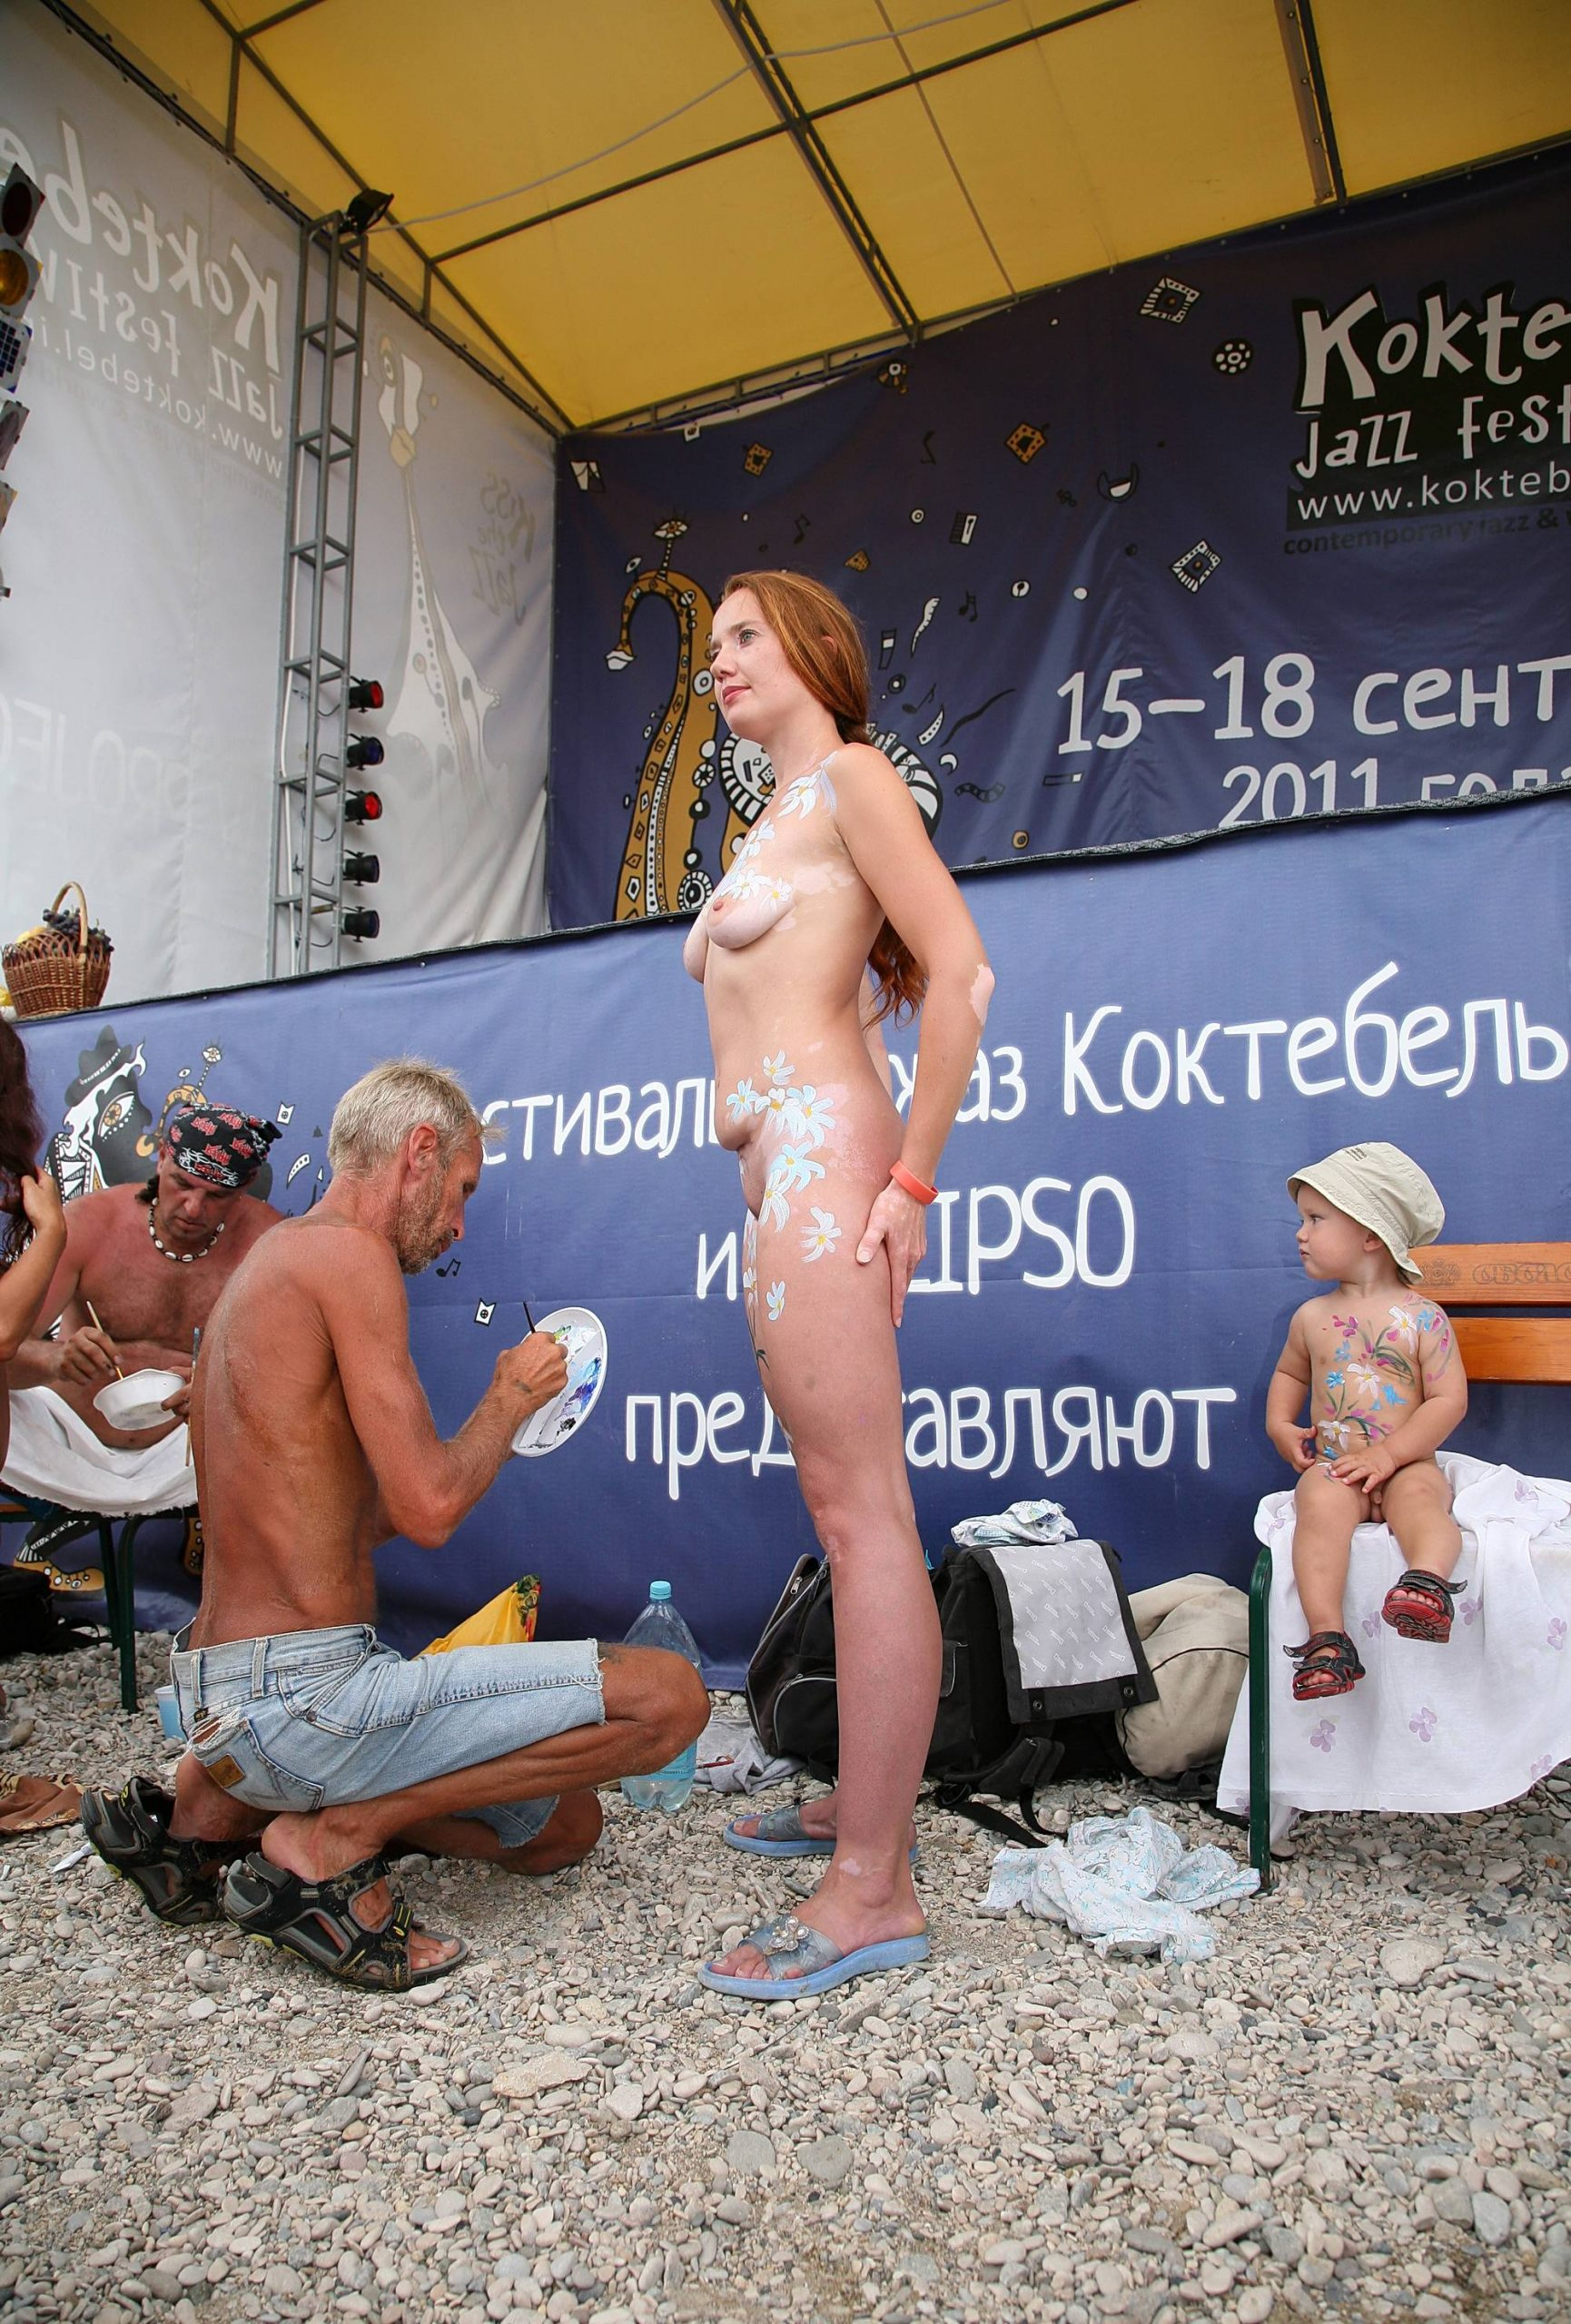 Purenudism Images-Cloudy Day Body Artists - 2